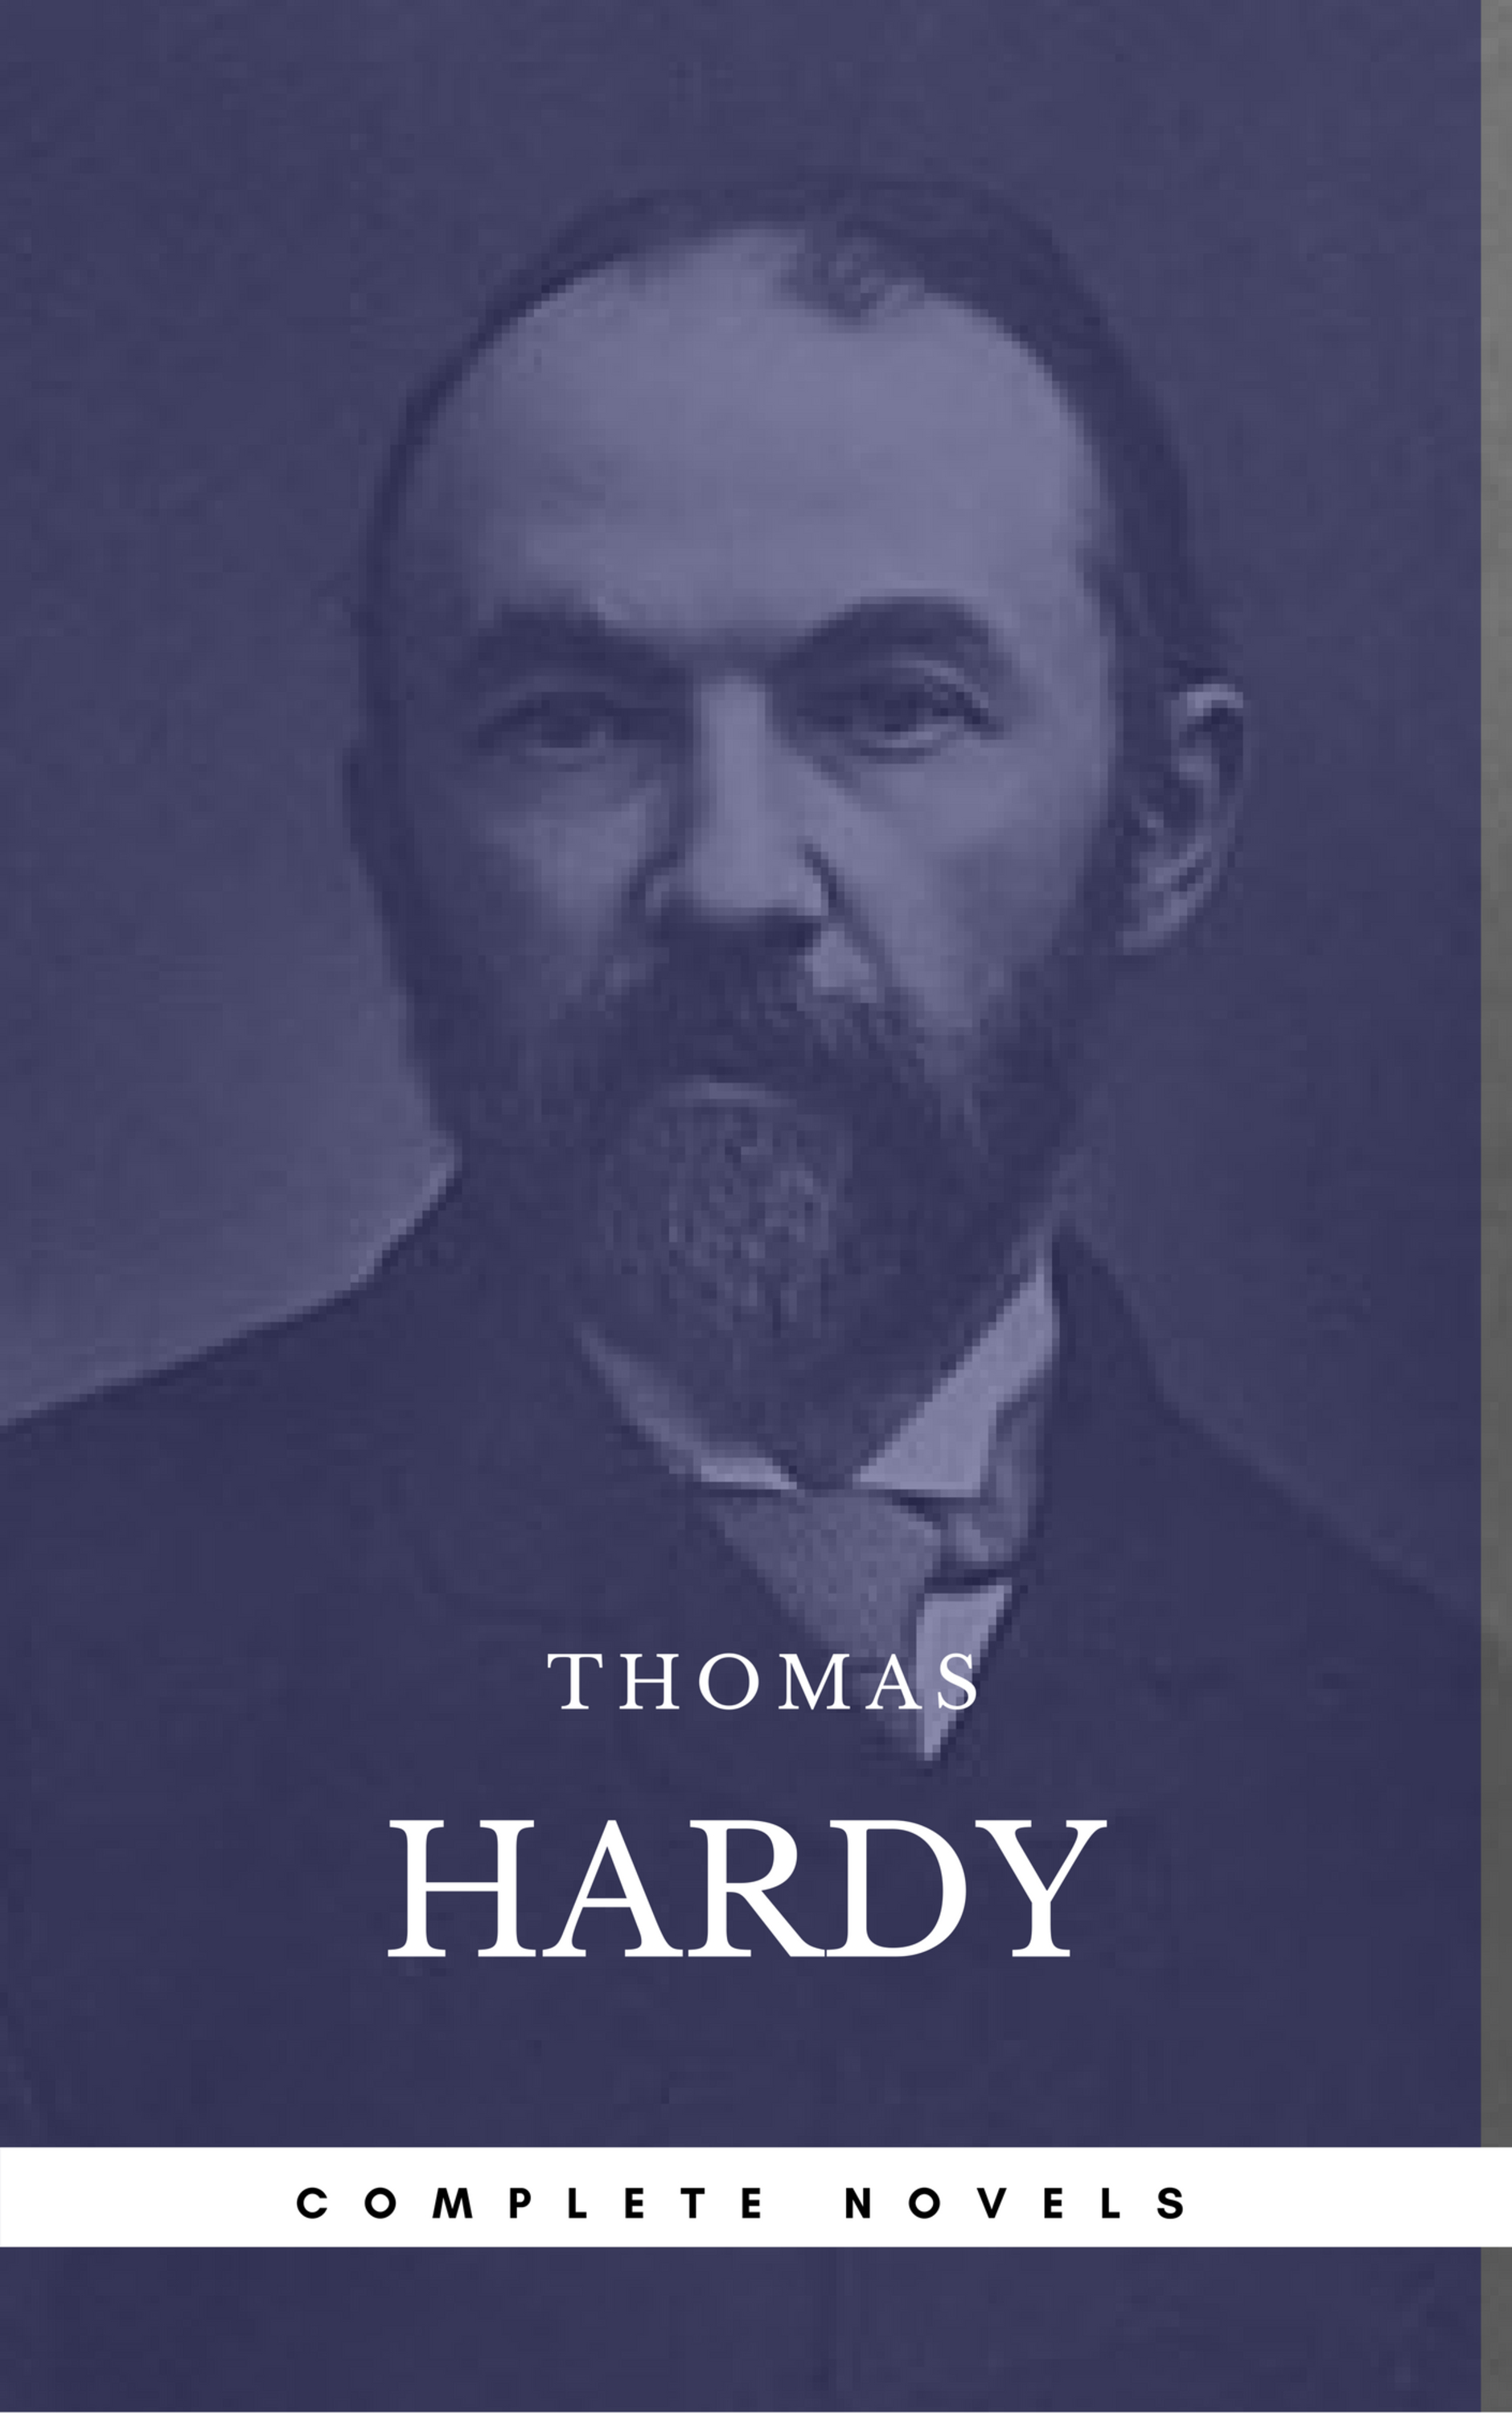 Томас Харди Hardy, Thomas: The Complete Novels [Tess of the D'Urbervilles, Jude the Obscure, The Mayor of Casterbridge, Two on a Tower, etc] (Book Center) (The Greatest Writers of All Time) hardy t the mayor of casterbridge